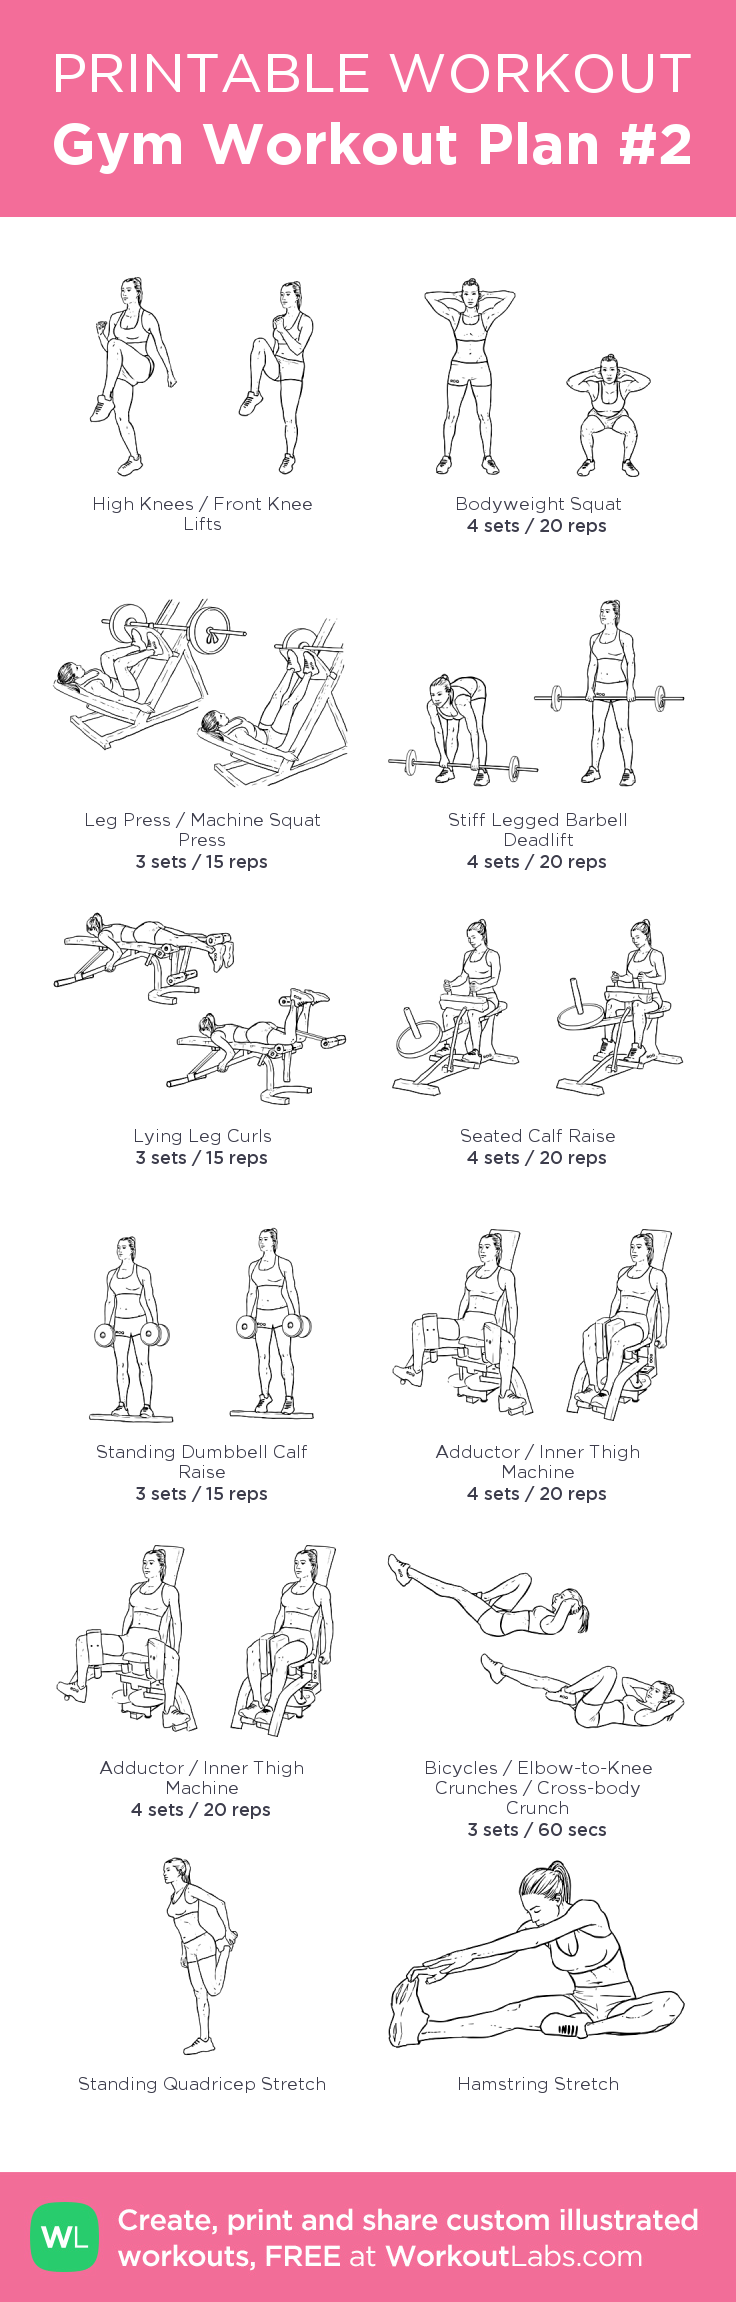 Gym Workout Plan 2 my visual workout created at